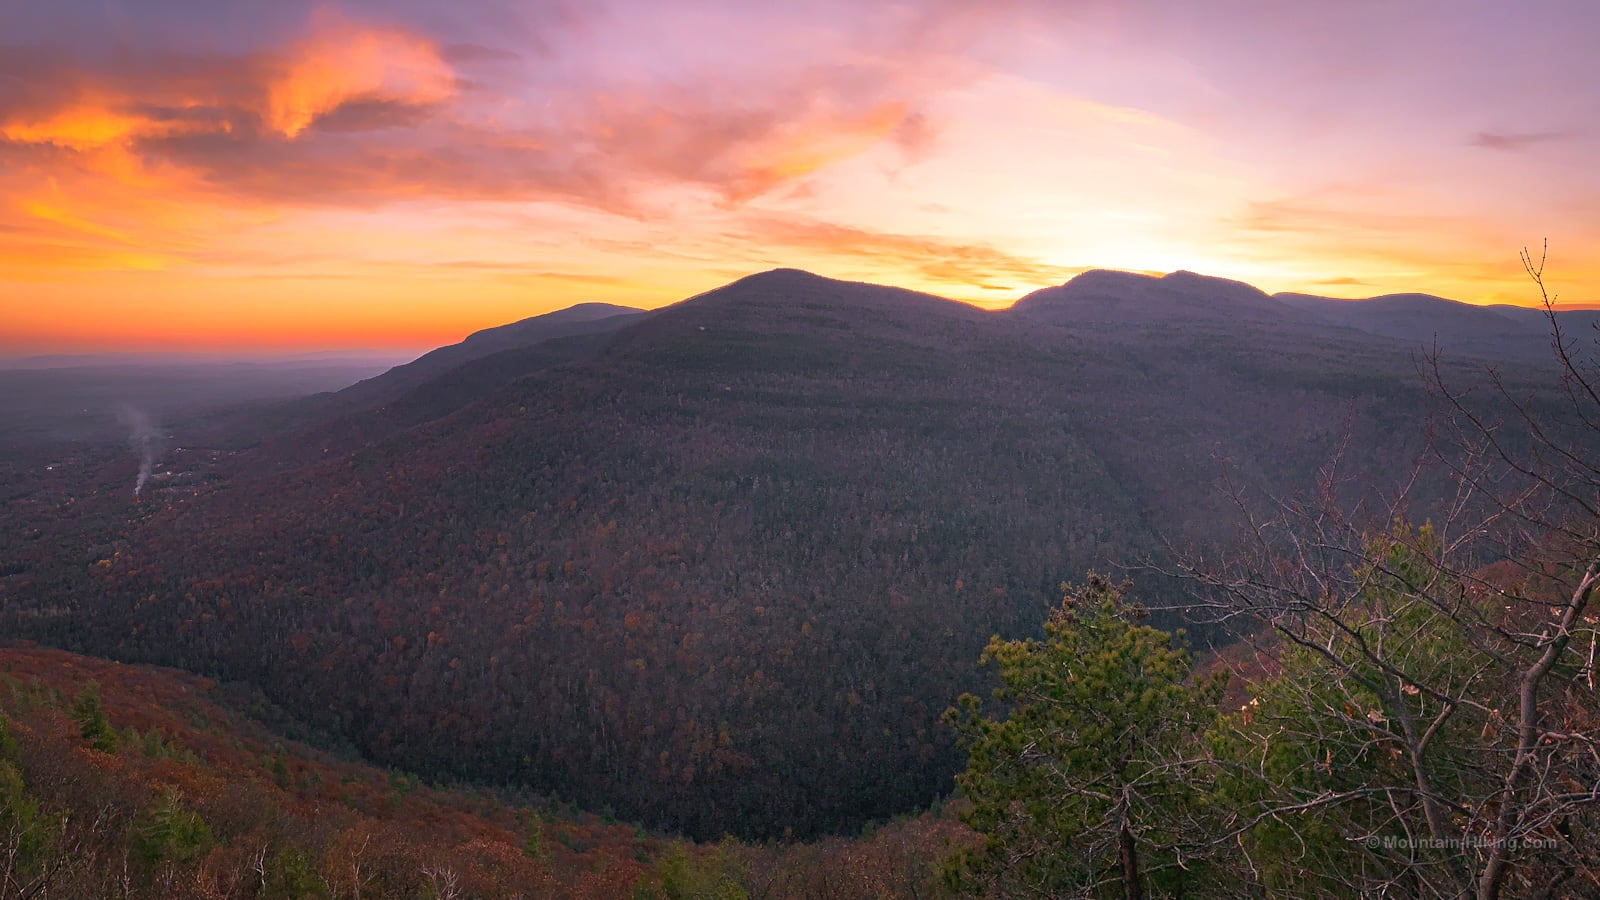 sunset over devil's path mountain summits